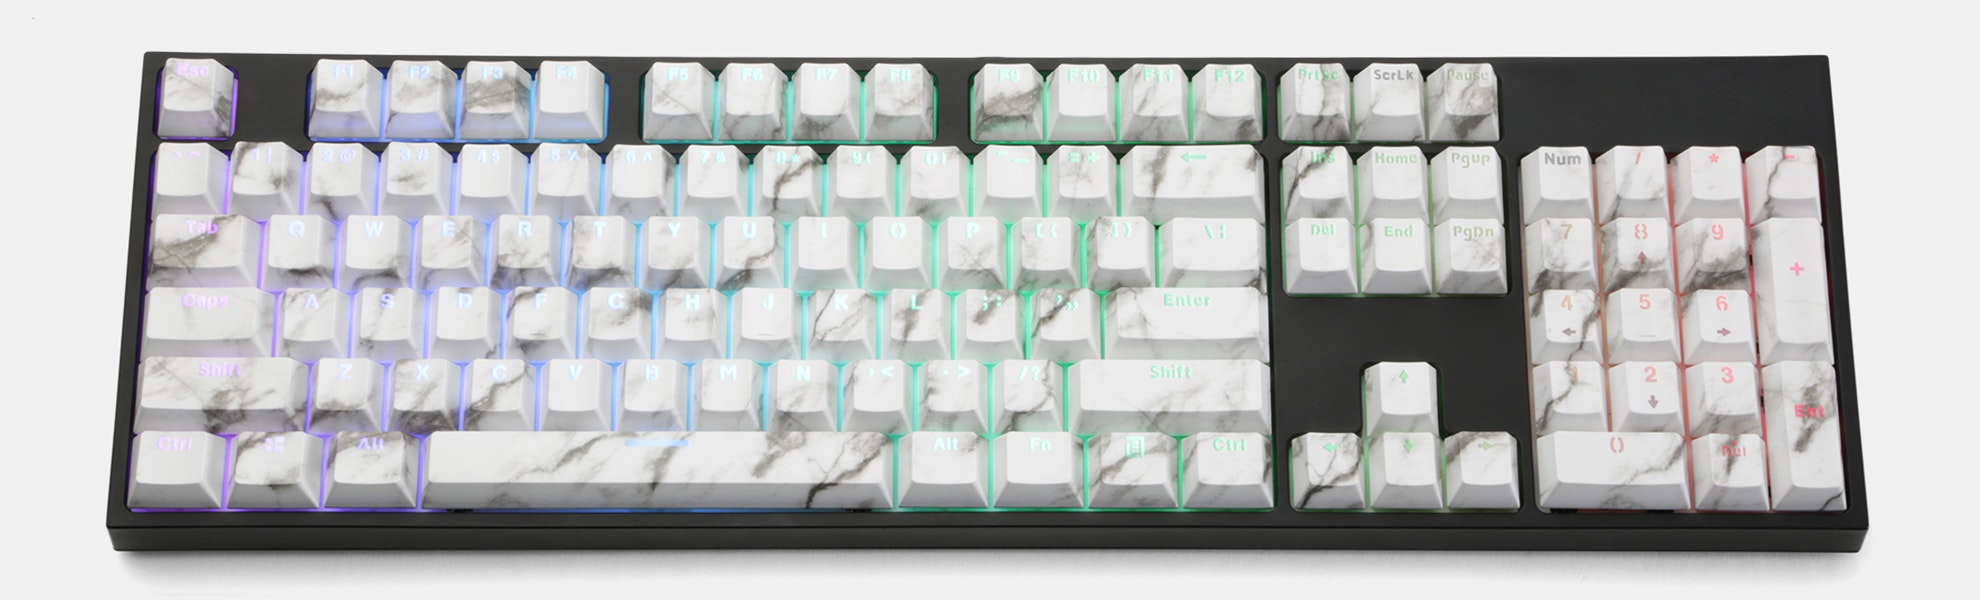 ABS Shine-Through Backlit Keycap Set